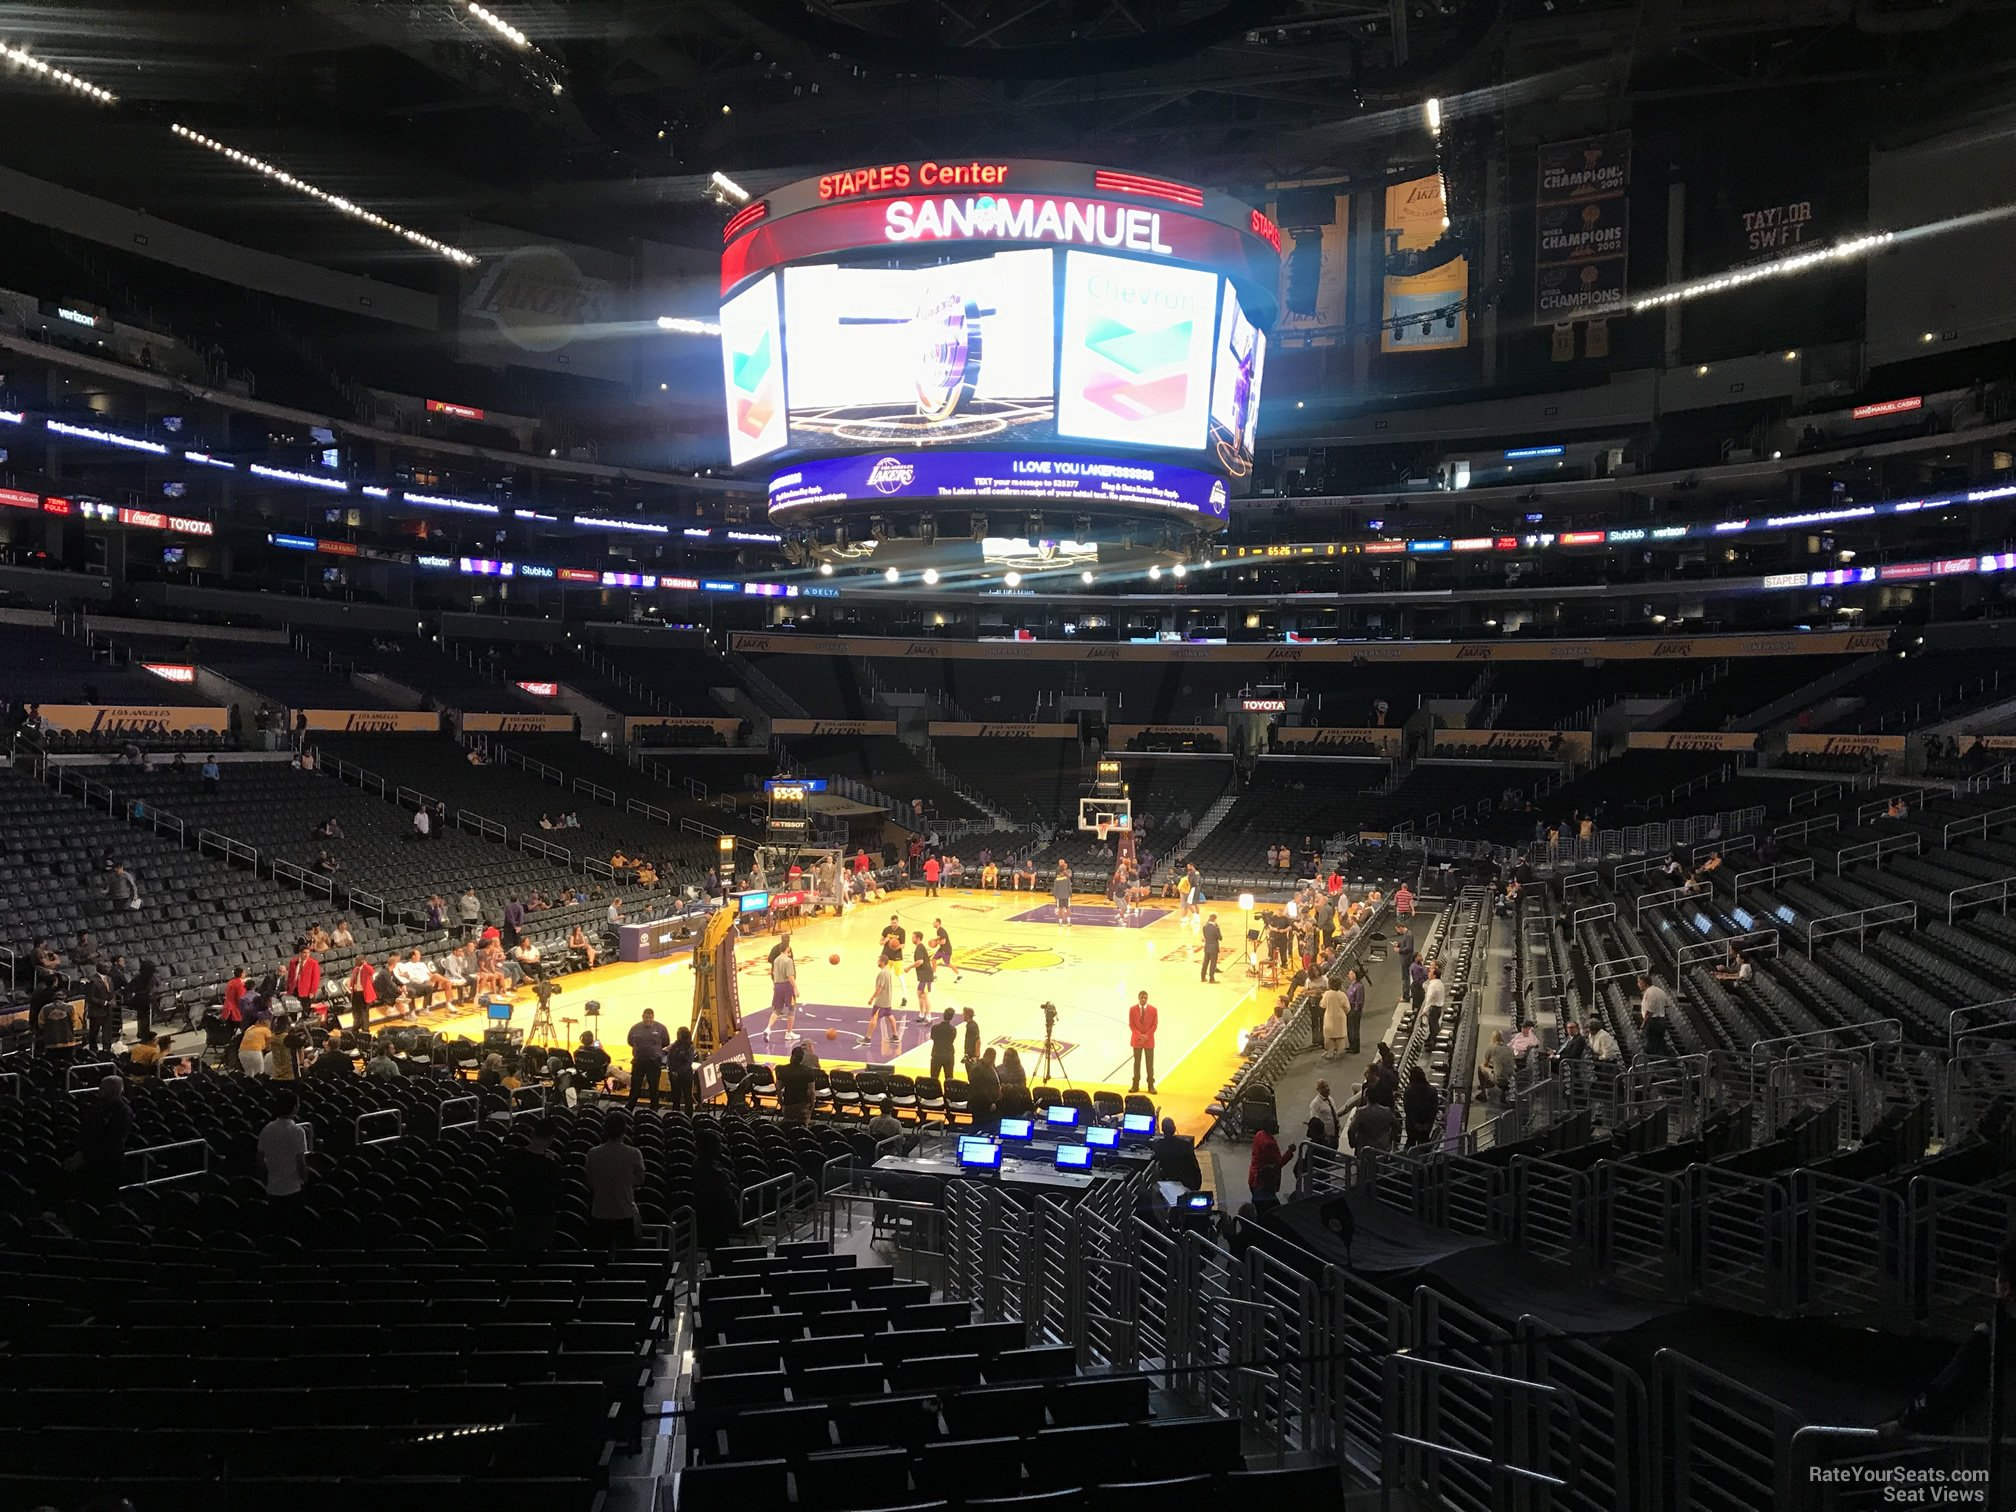 Staples Center Lakers Section 115 Row 20 2 on 10 2 2017f